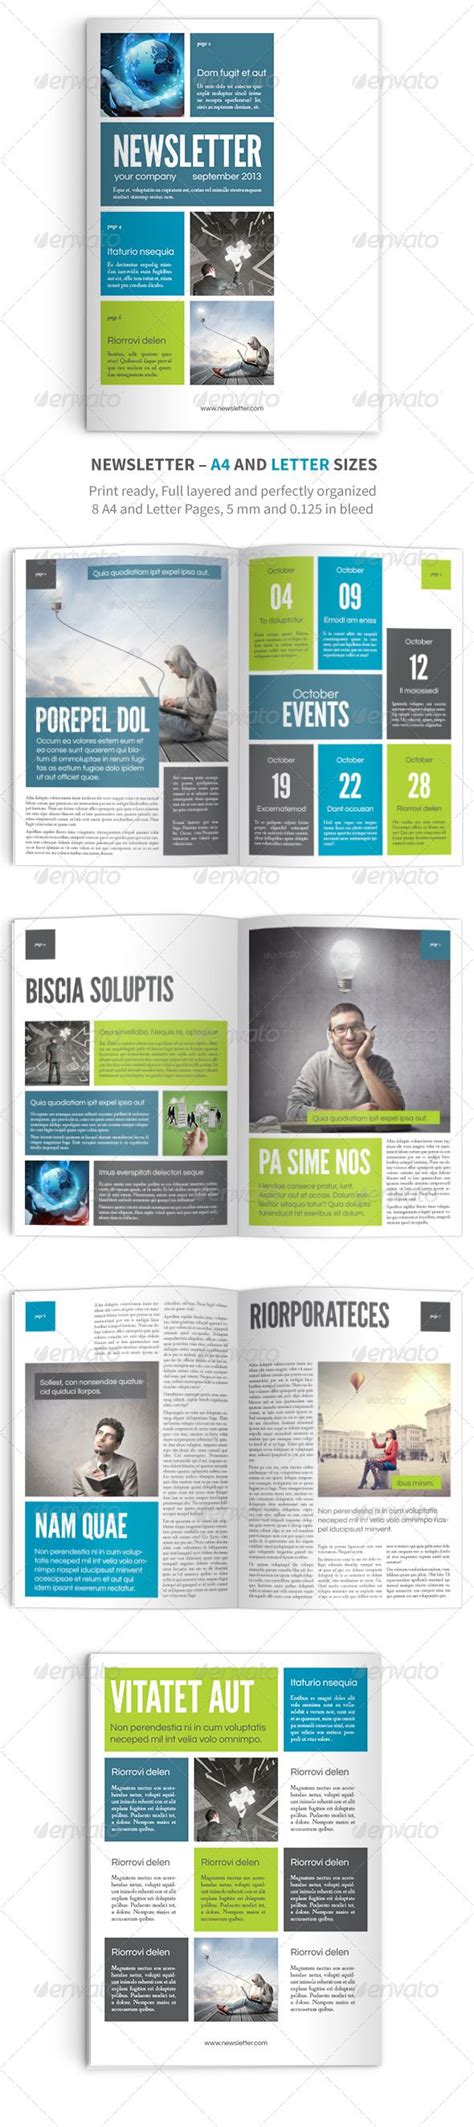 adobe indesign newsletter template newsletter vol 9 indesign template graphicriver